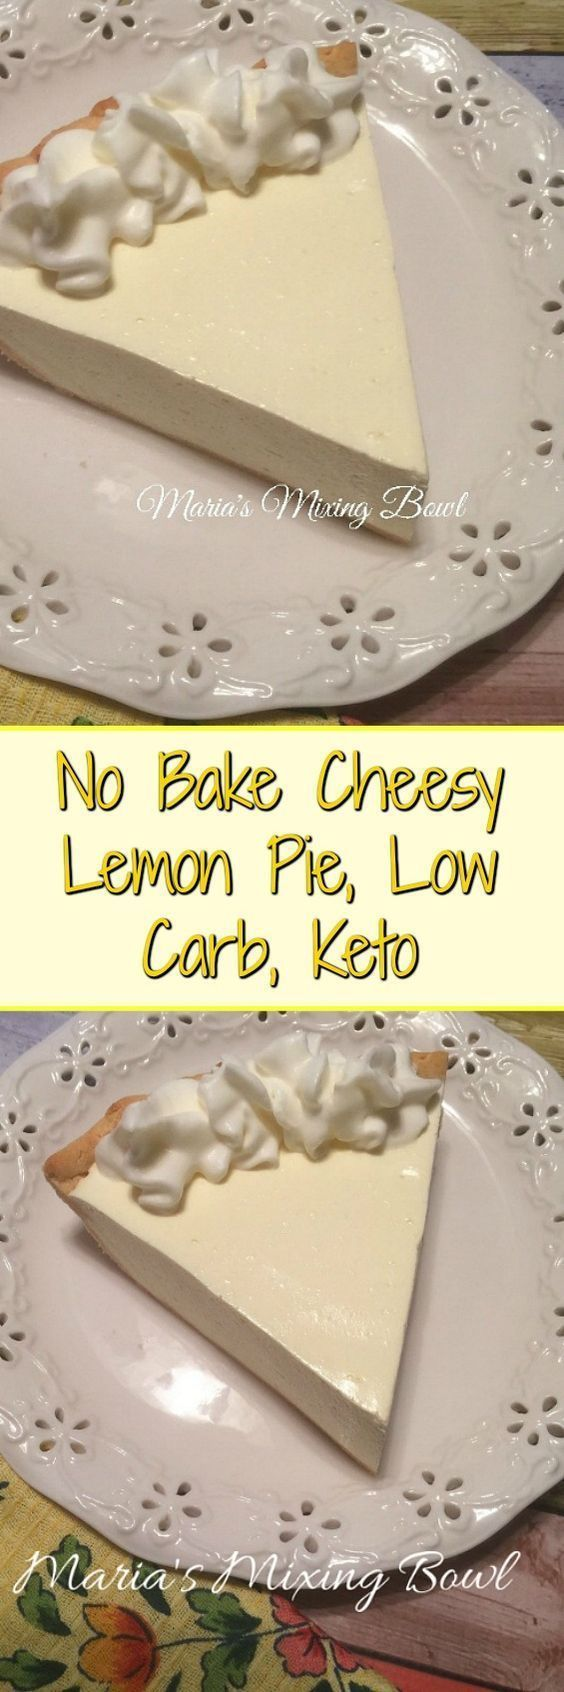 No Bake Cheesy Lemon Pie ~ Low Carb,Keto